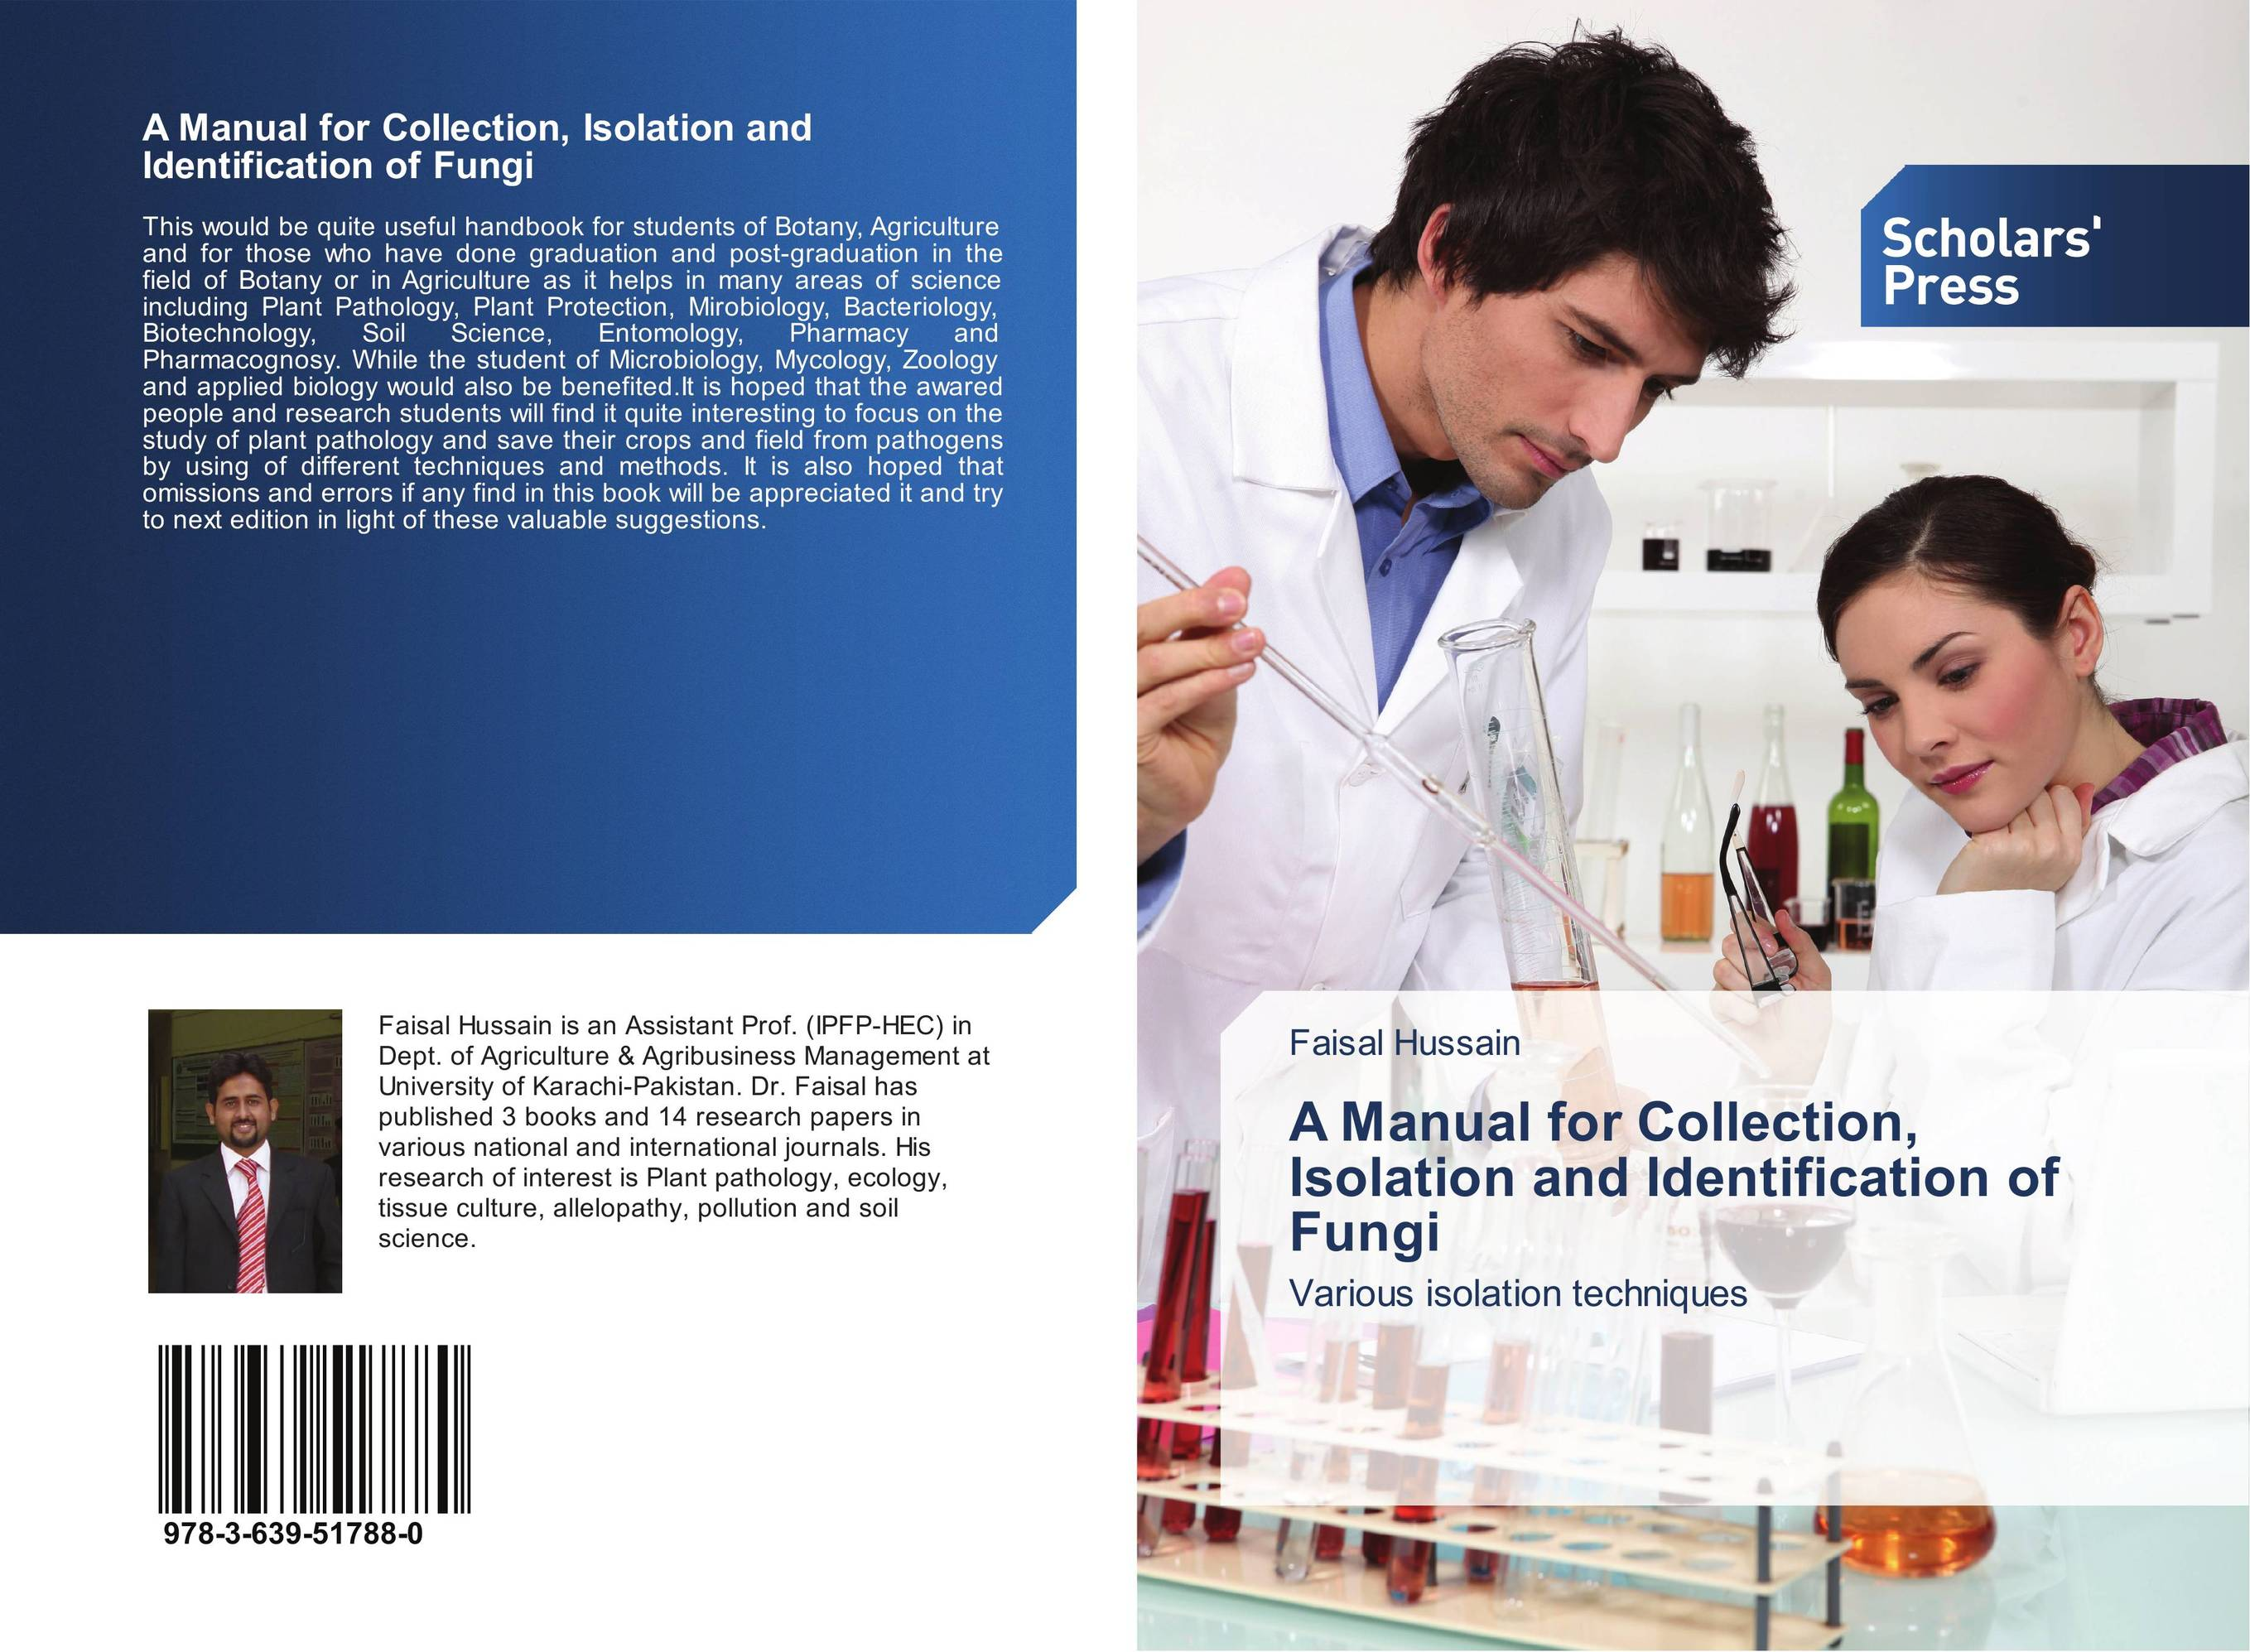 A Manual for Collection, Isolation and Identification of Fungi handbook of isolation and characterization of impurities in pharmaceuticals 5